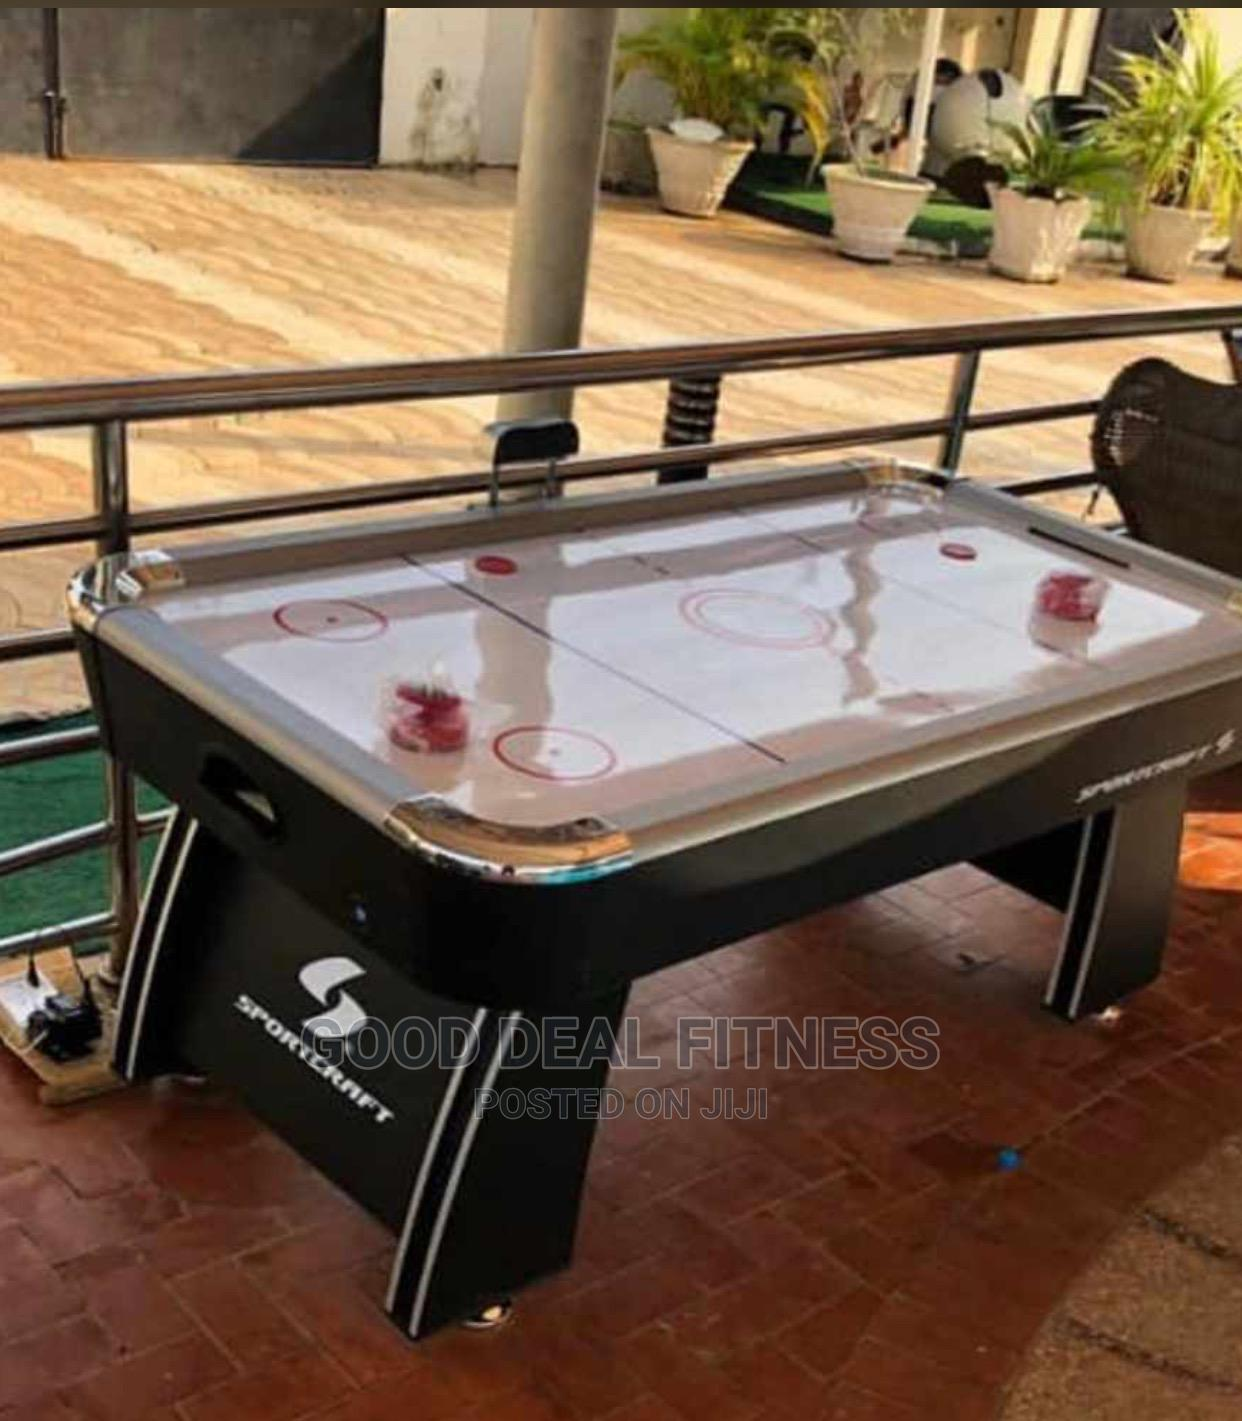 Standard Big Americans Fitness Electri Air Hockey Table | Sports Equipment for sale in Surulere, Lagos State, Nigeria